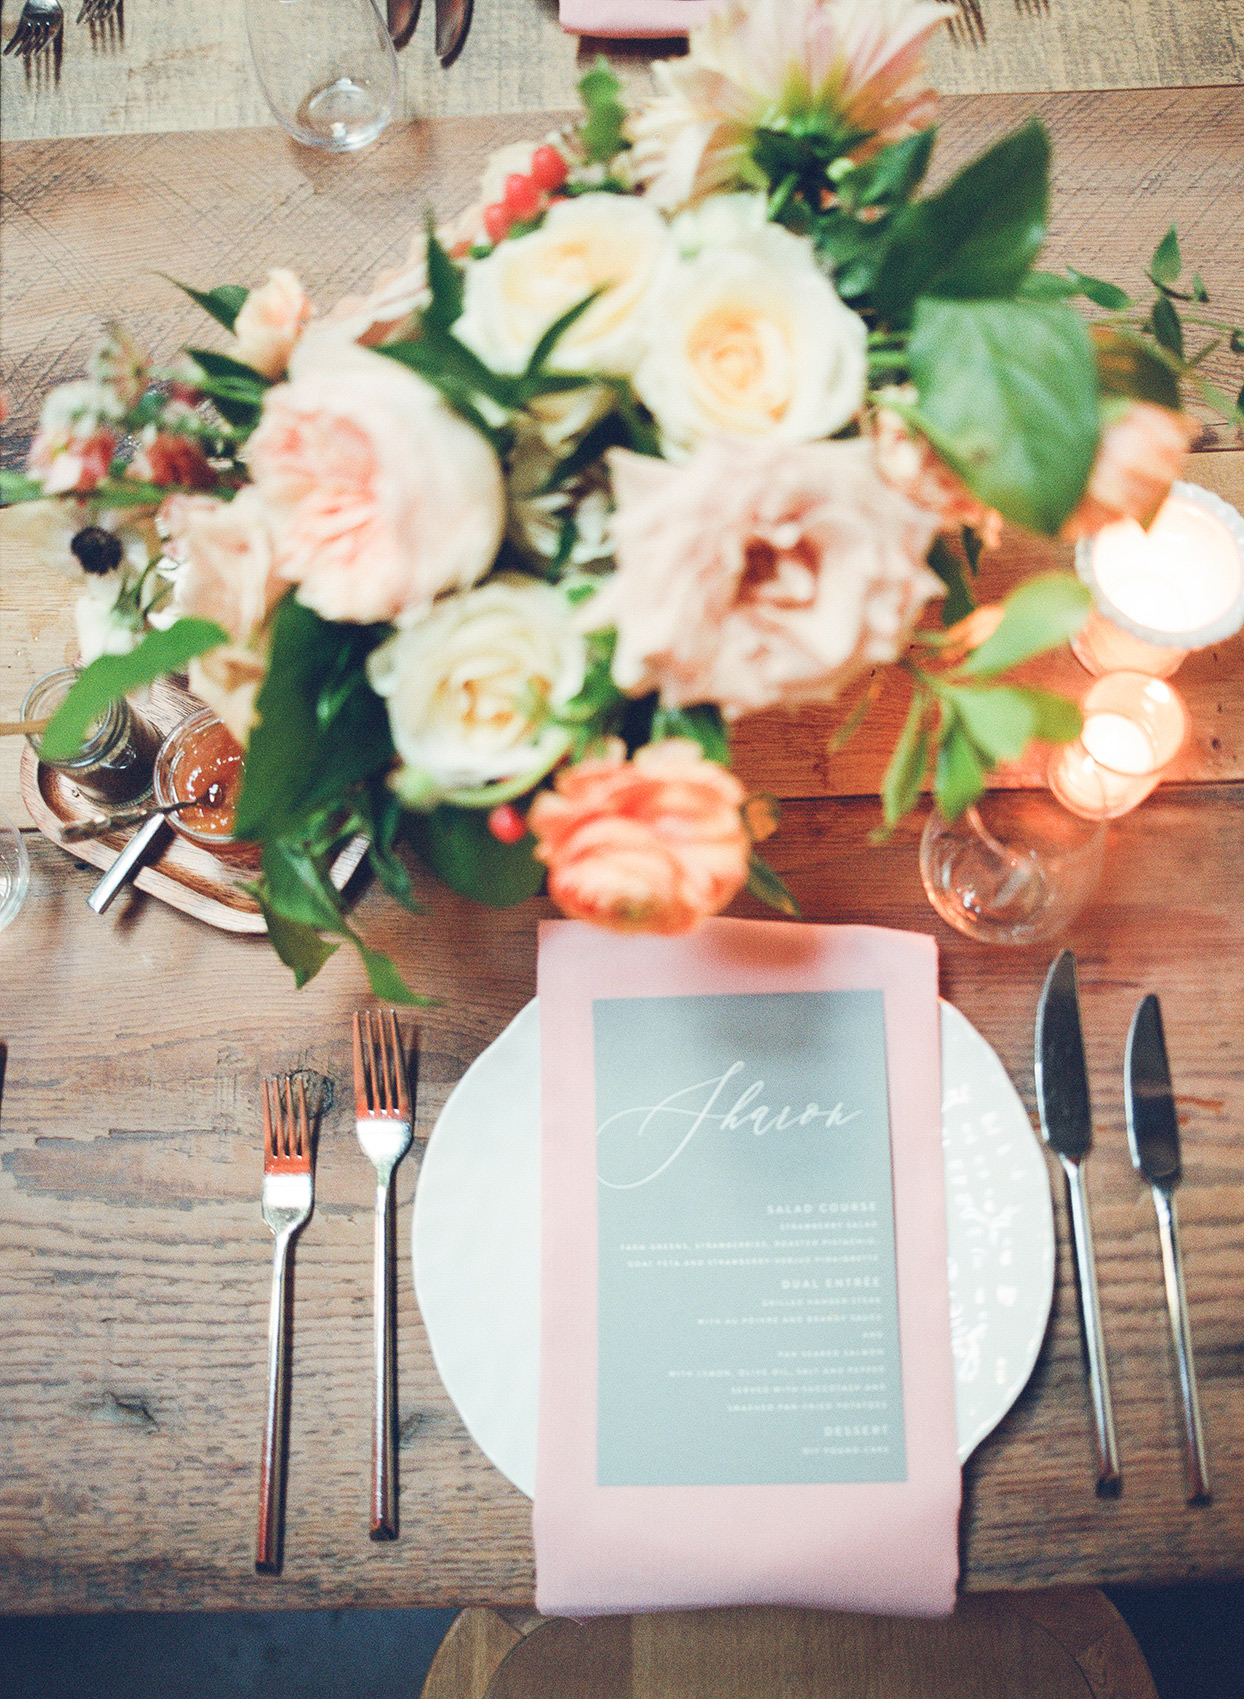 shelby david wedding place setting with flowers